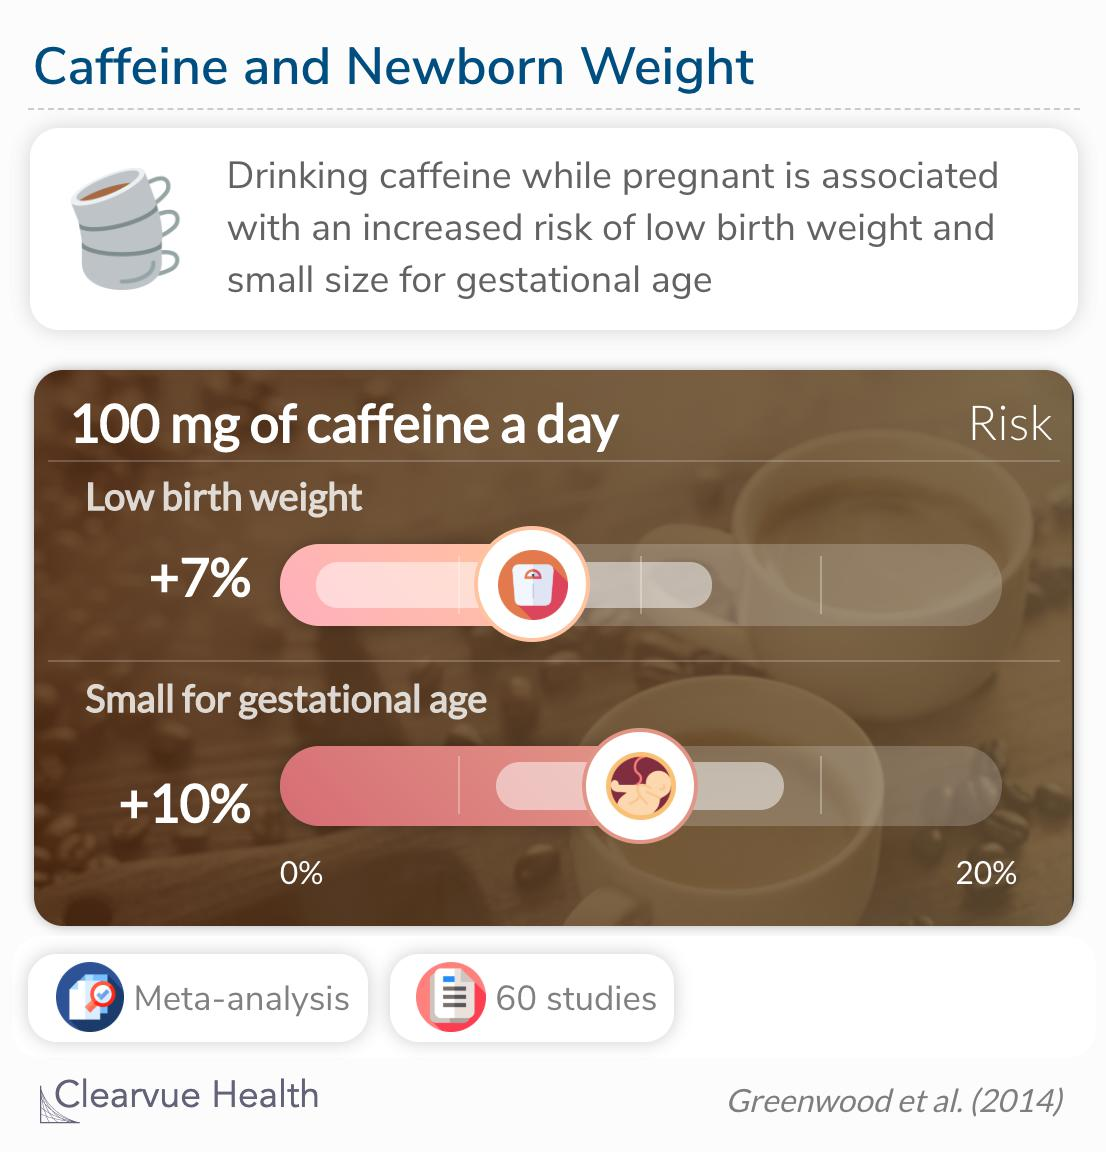 Caffeine consumption was associated with an increased risk of stillbirth.